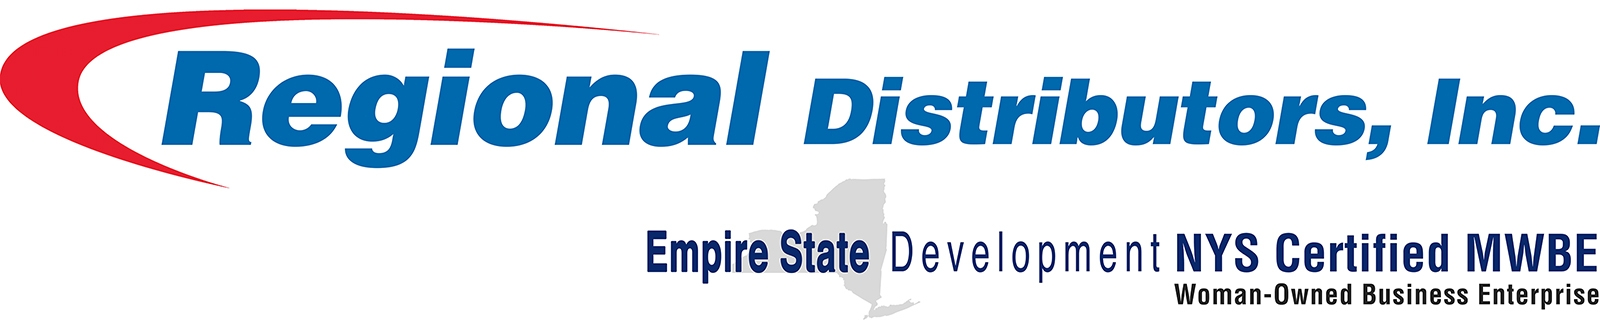 Regional Distributors, Inc. is a proud family-owned and NYS Certified Women's Business Enterprise (WBE) that delivers efficient commercial products and equipment that meet unique business needs and customer service that exceeds expectations.